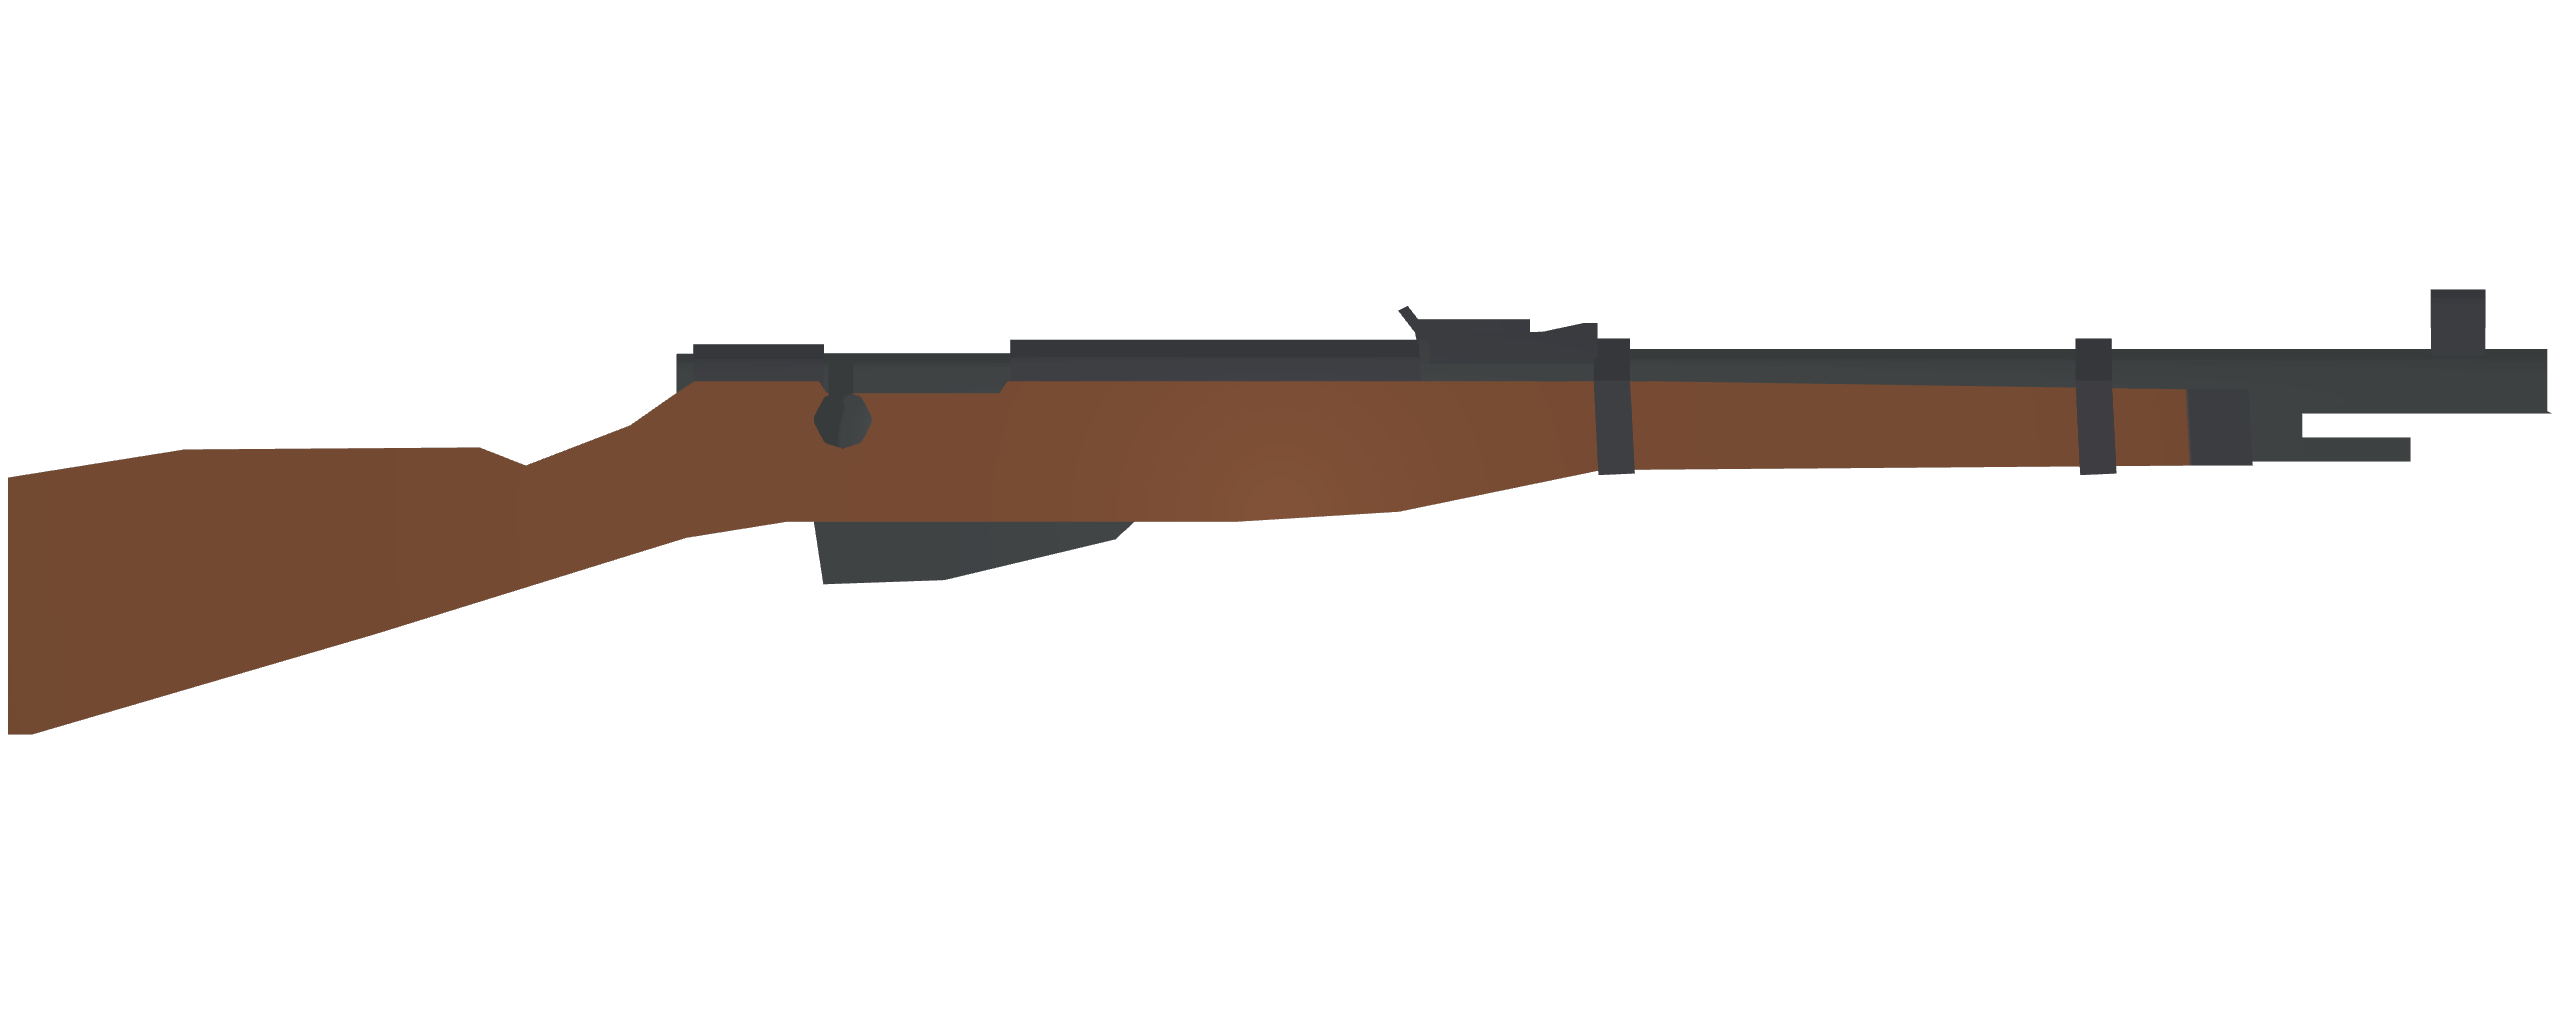 Unturned Uncreated Warfare Mods & All ID List + Attachments - Russian Weapons - 59F3EFE